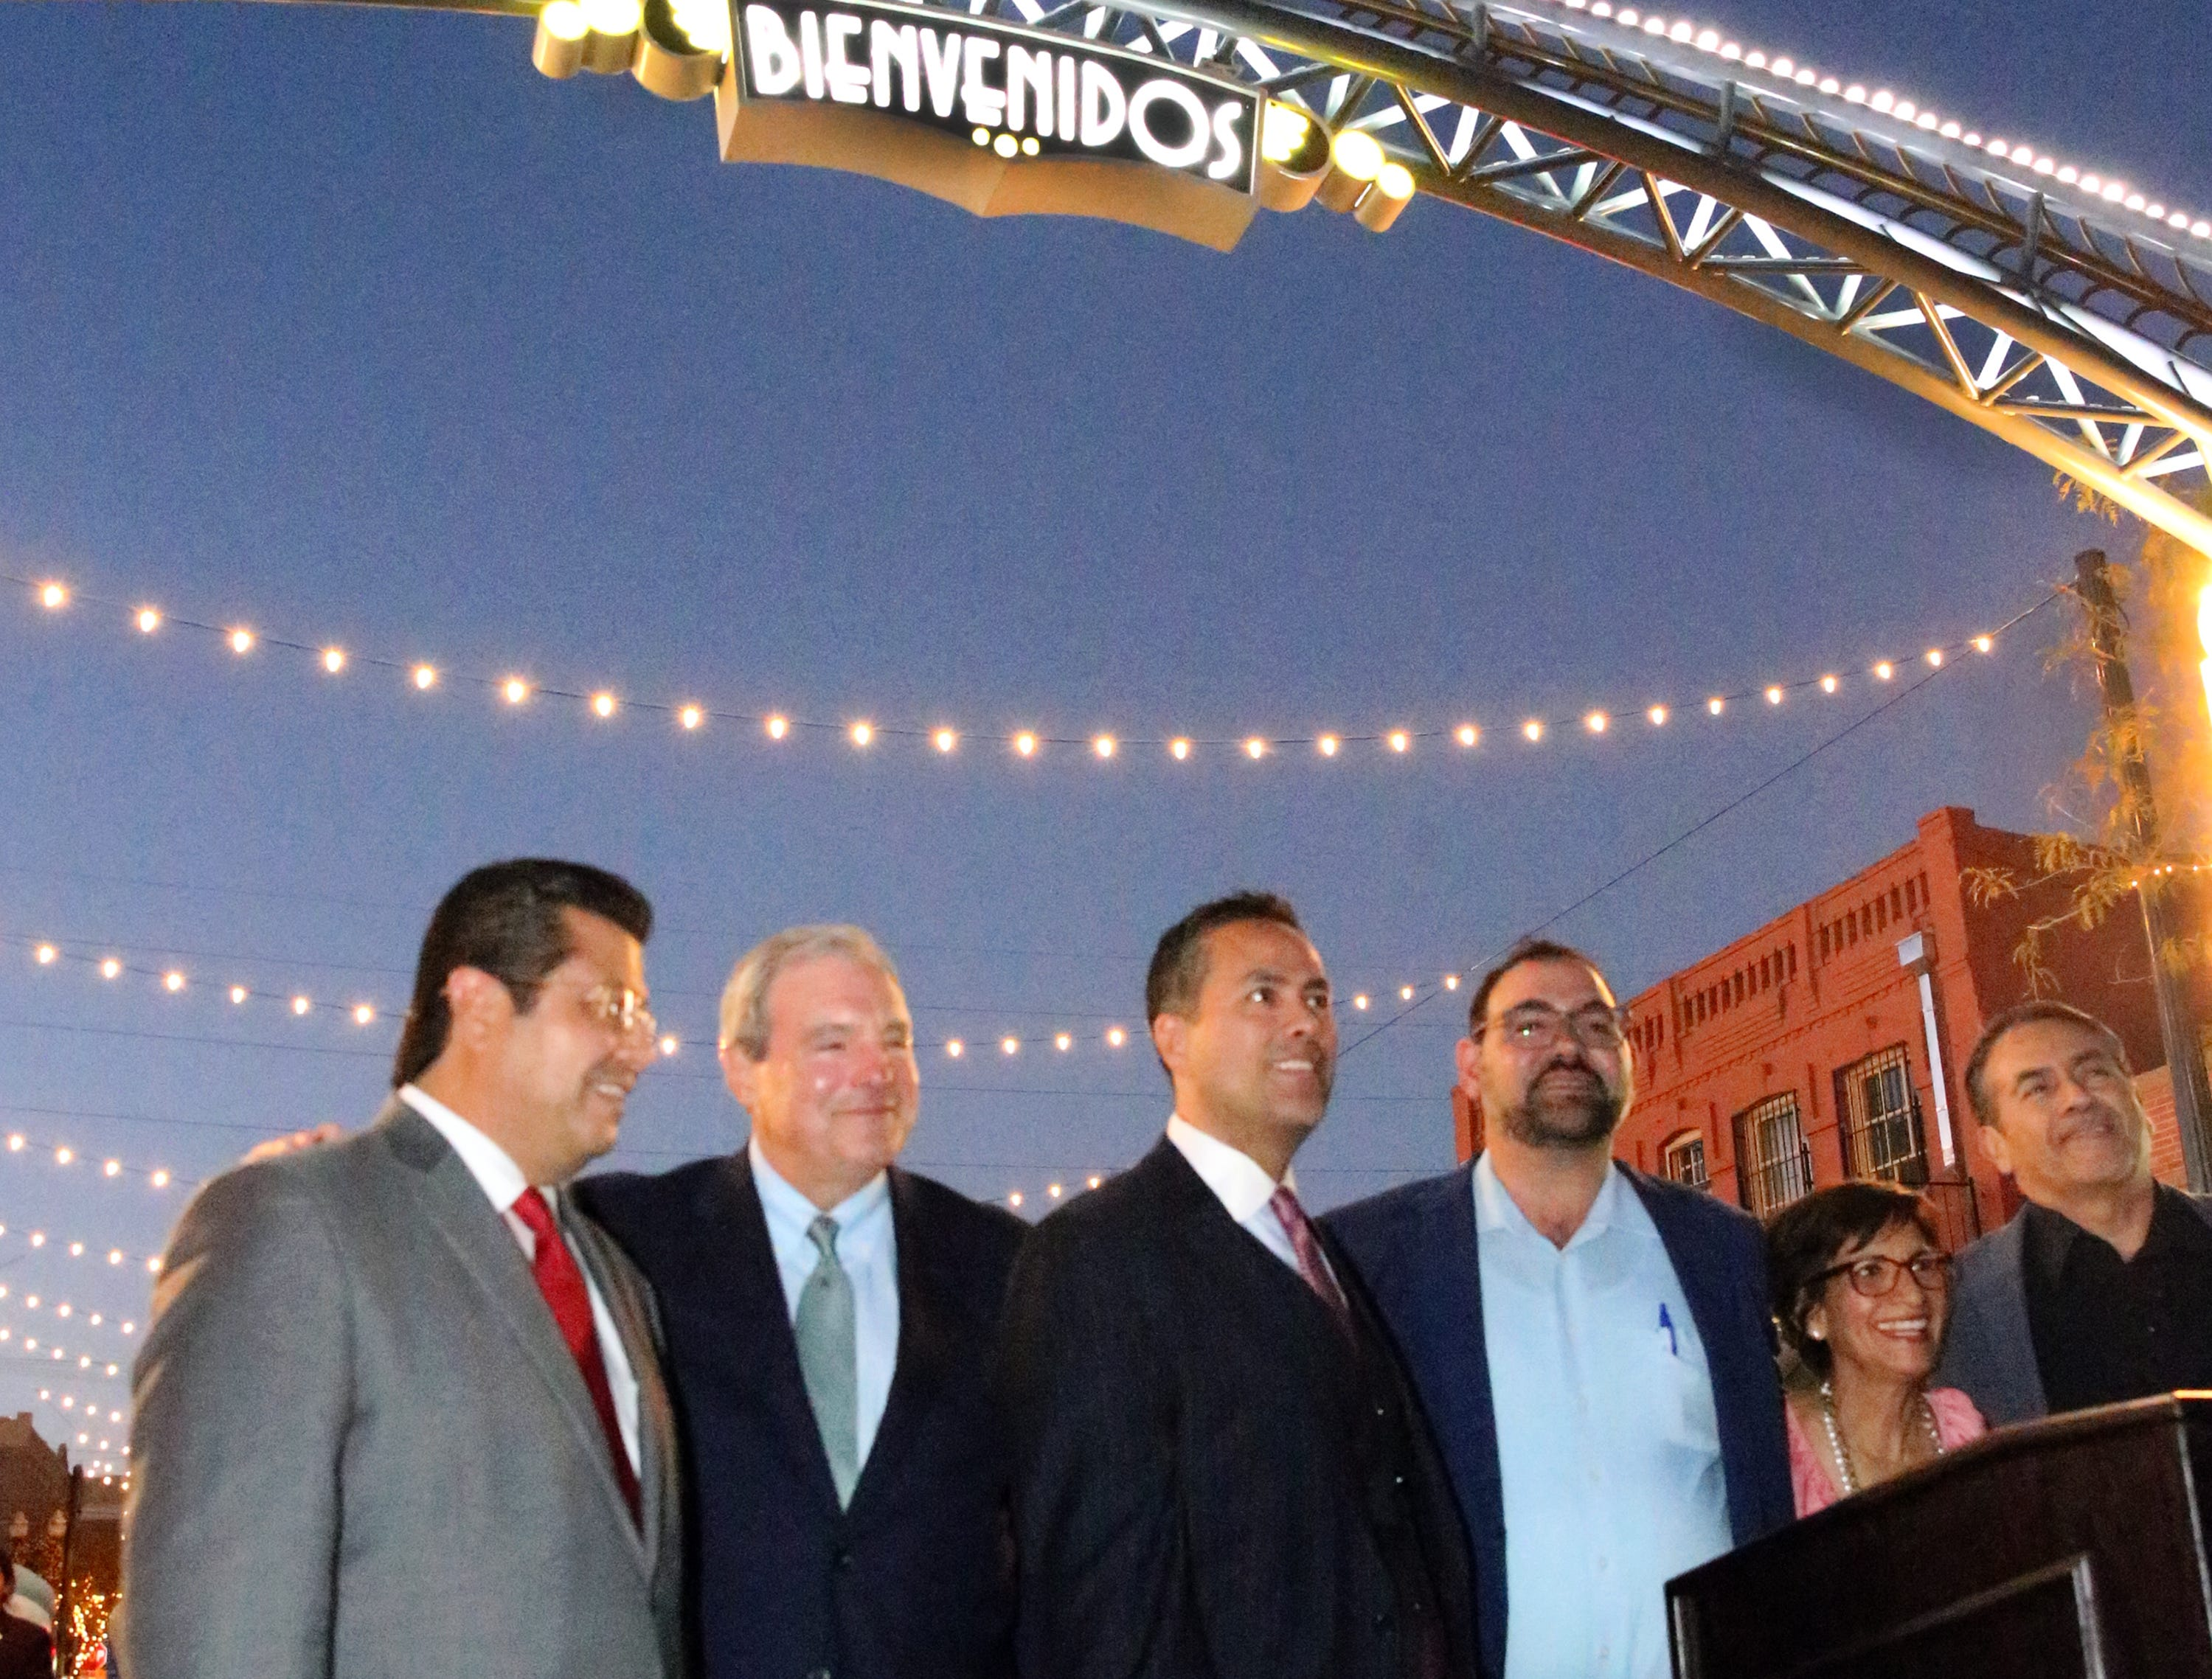 Dignitaries on hand for the grand opening of the Paseo de Las Luces under the newly lighted archway Wednesday. They are from left: Juarez mayor Armando Cabada, El Paso mayor Dee Margo, El Paso city manager Tommy Gonzalez and city council members Peter Svarzbein, Cissy Lizarraga and Henry Rivera.